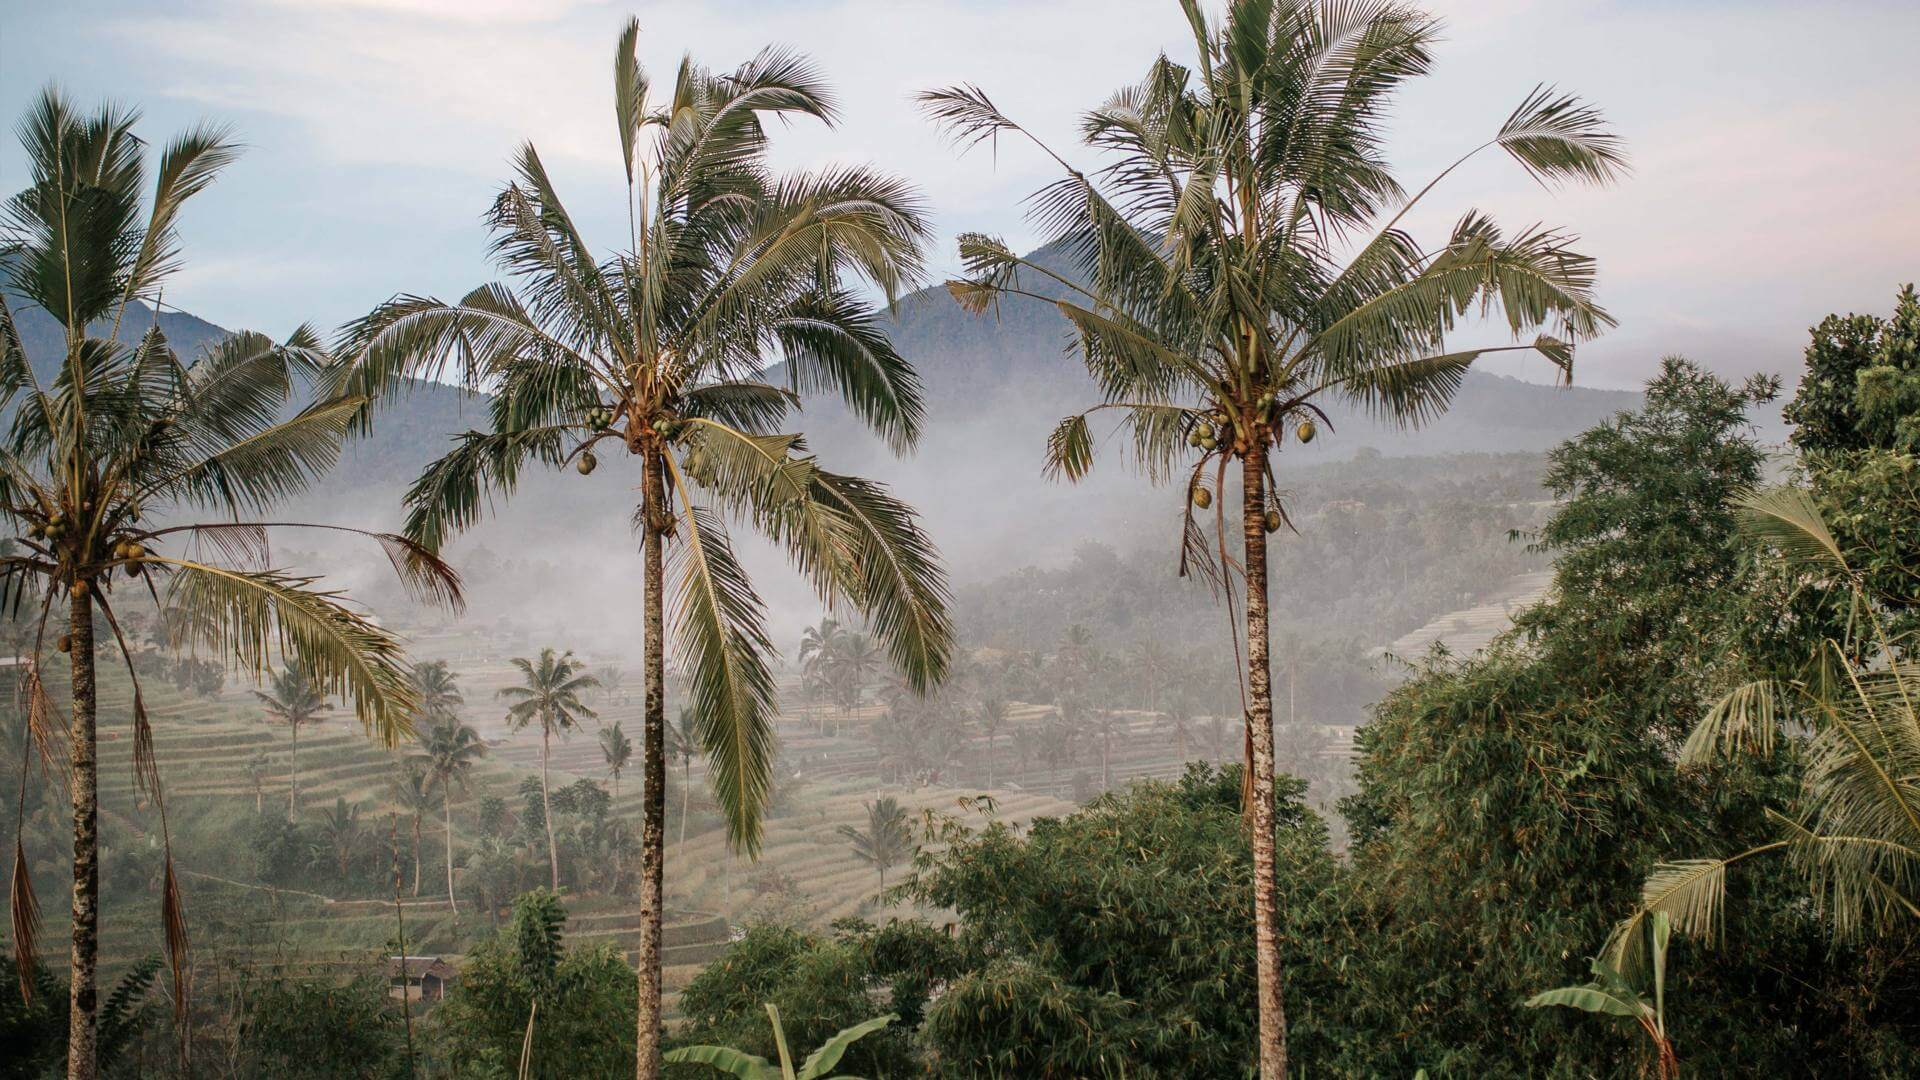 view of palm trees, ricefield and a volcano somewhere in Bali